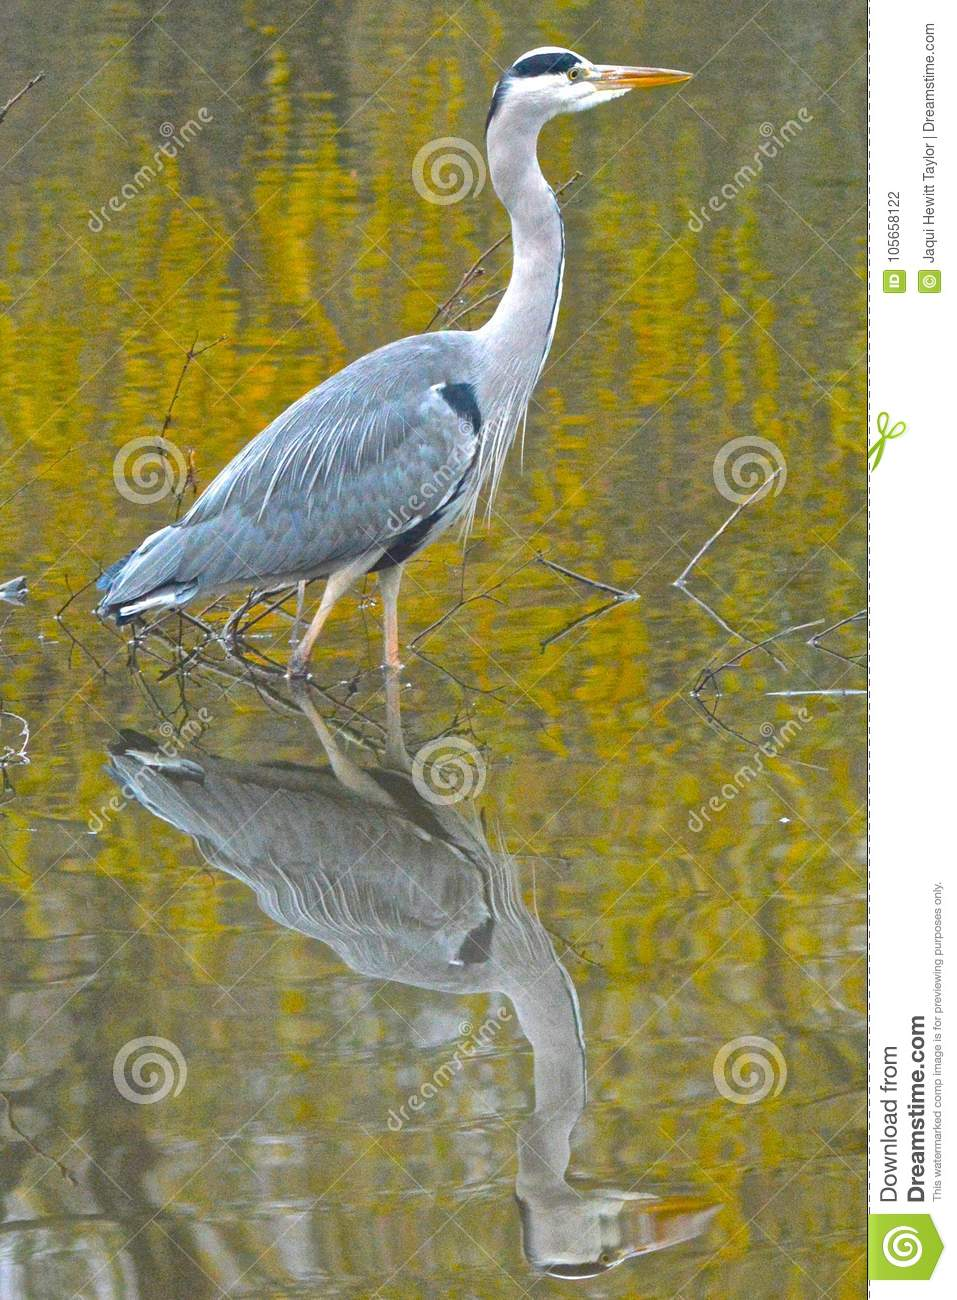 Download A Heron On The Ornamental Pond, Southampton Common Stock Photo - Image of water, reflection: 105658122